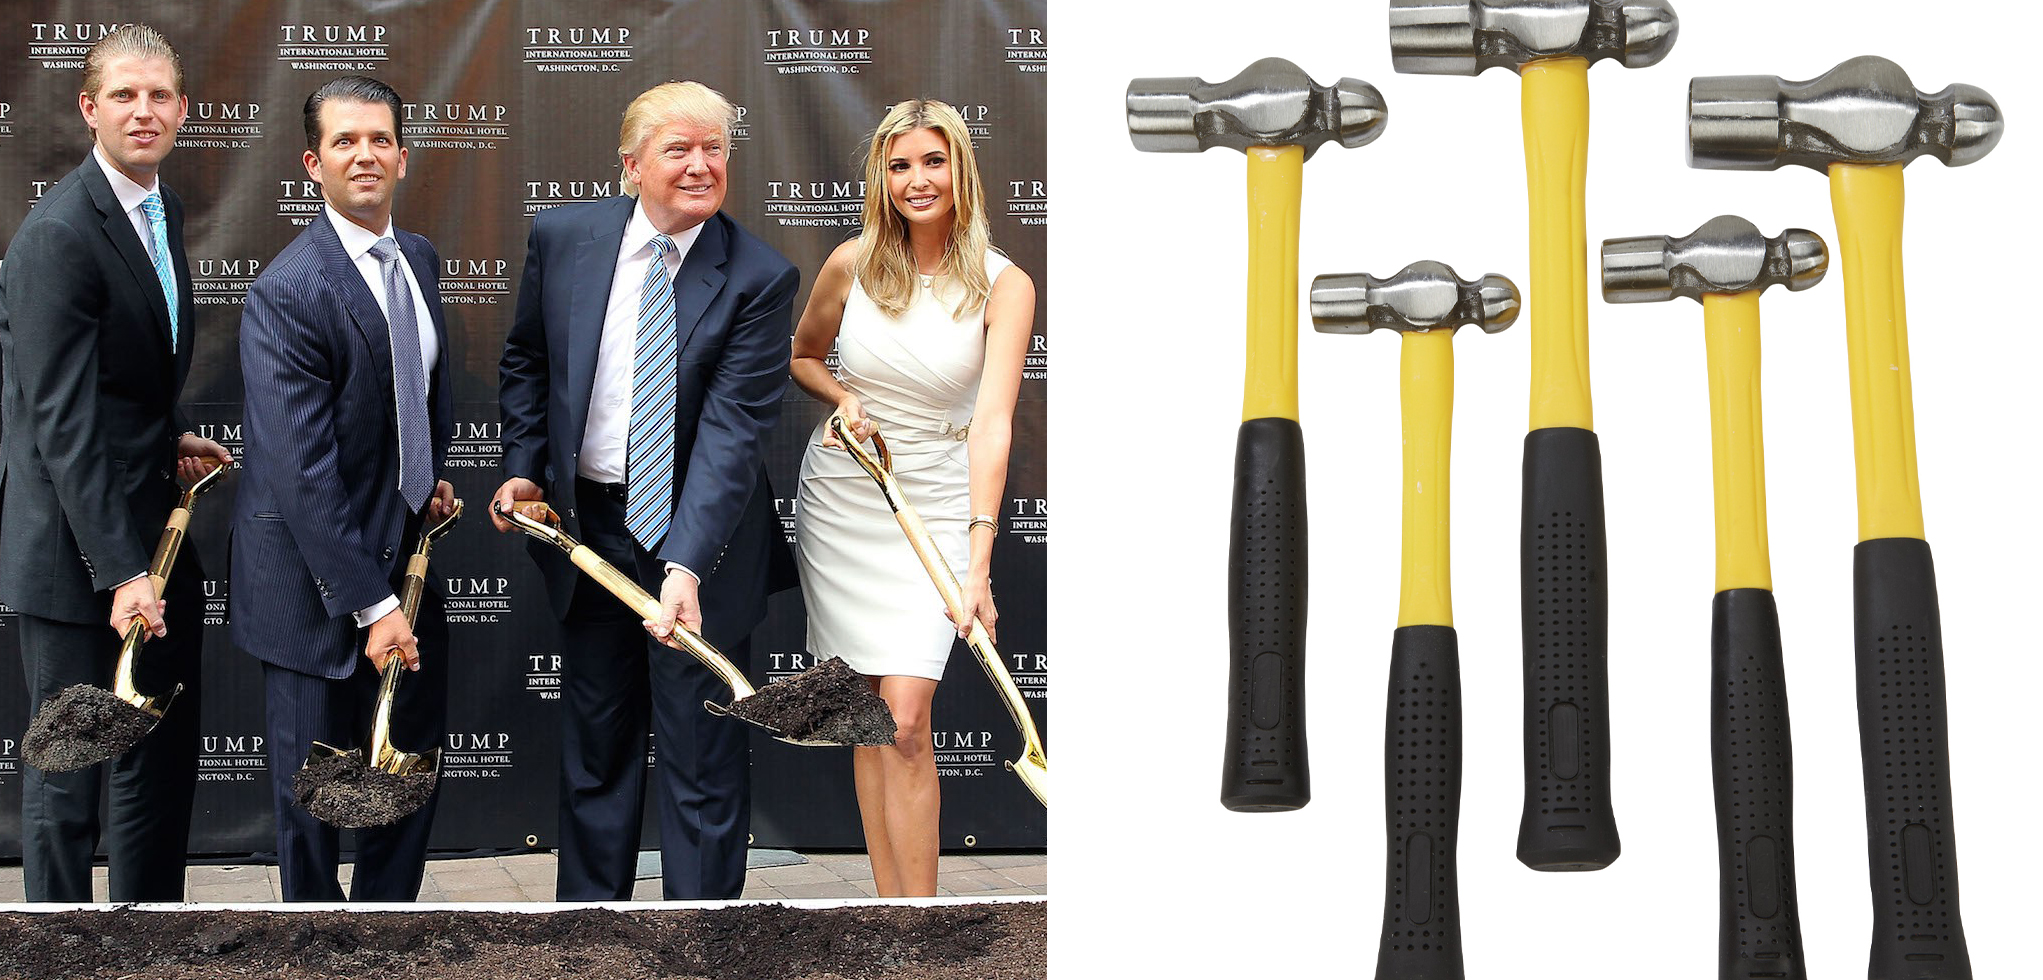 Scientists Can Finally Prove Which Trump Can Outsmart a Bag of Hammers